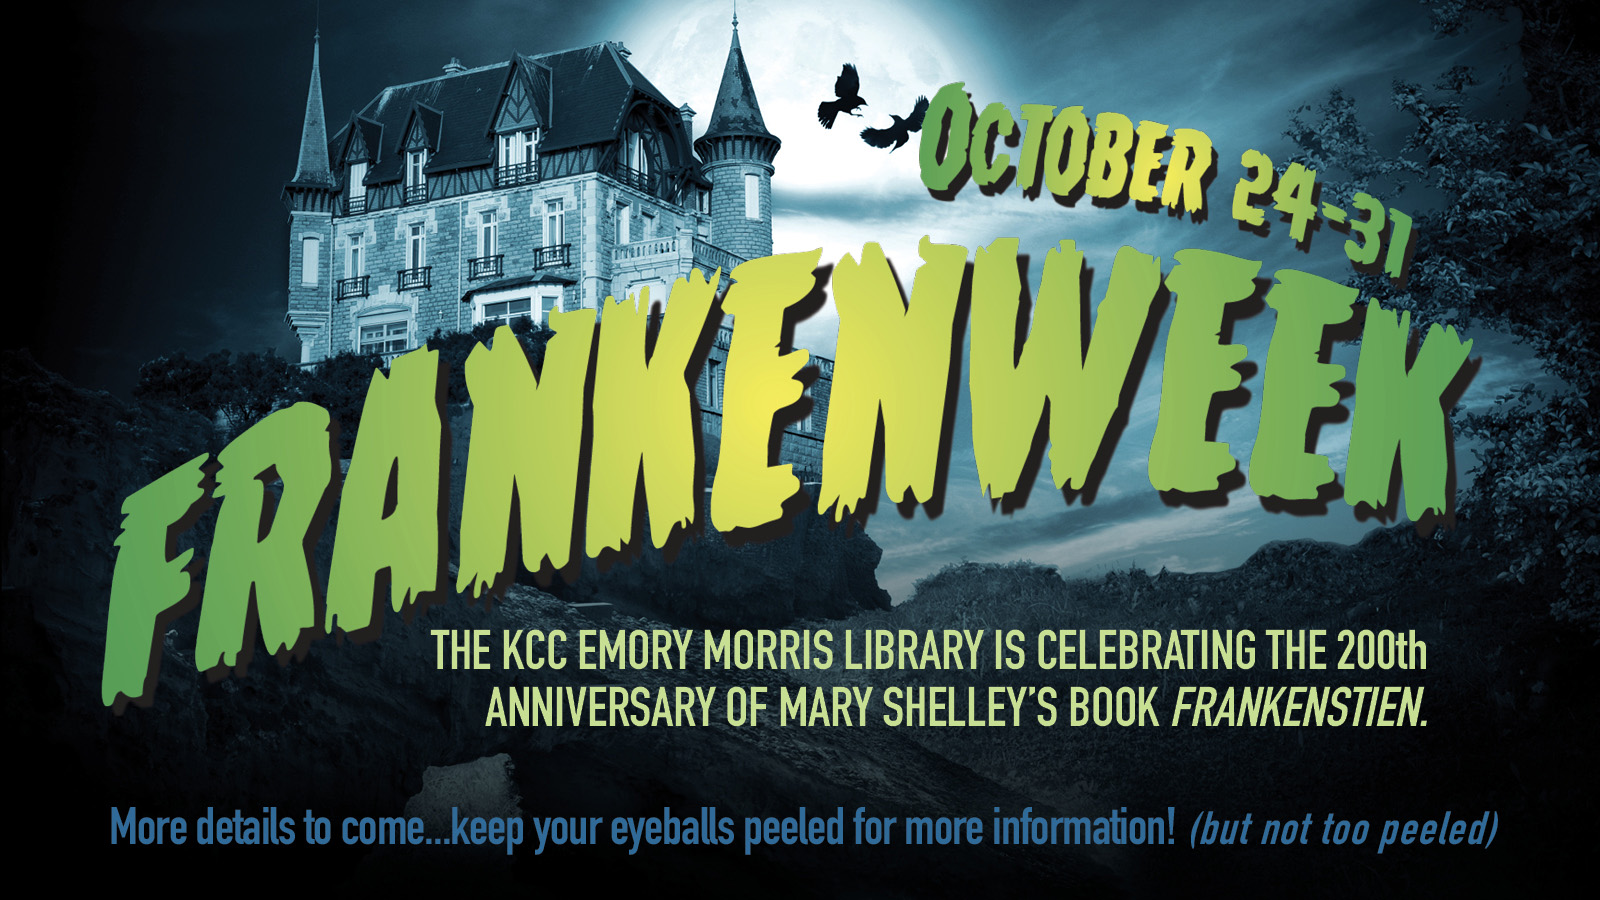 "A haunted house and text promoting KCC's ""Frankenweek"" celebrating the 200th anniversary of Mary Shelley's ""Frankenstein."""